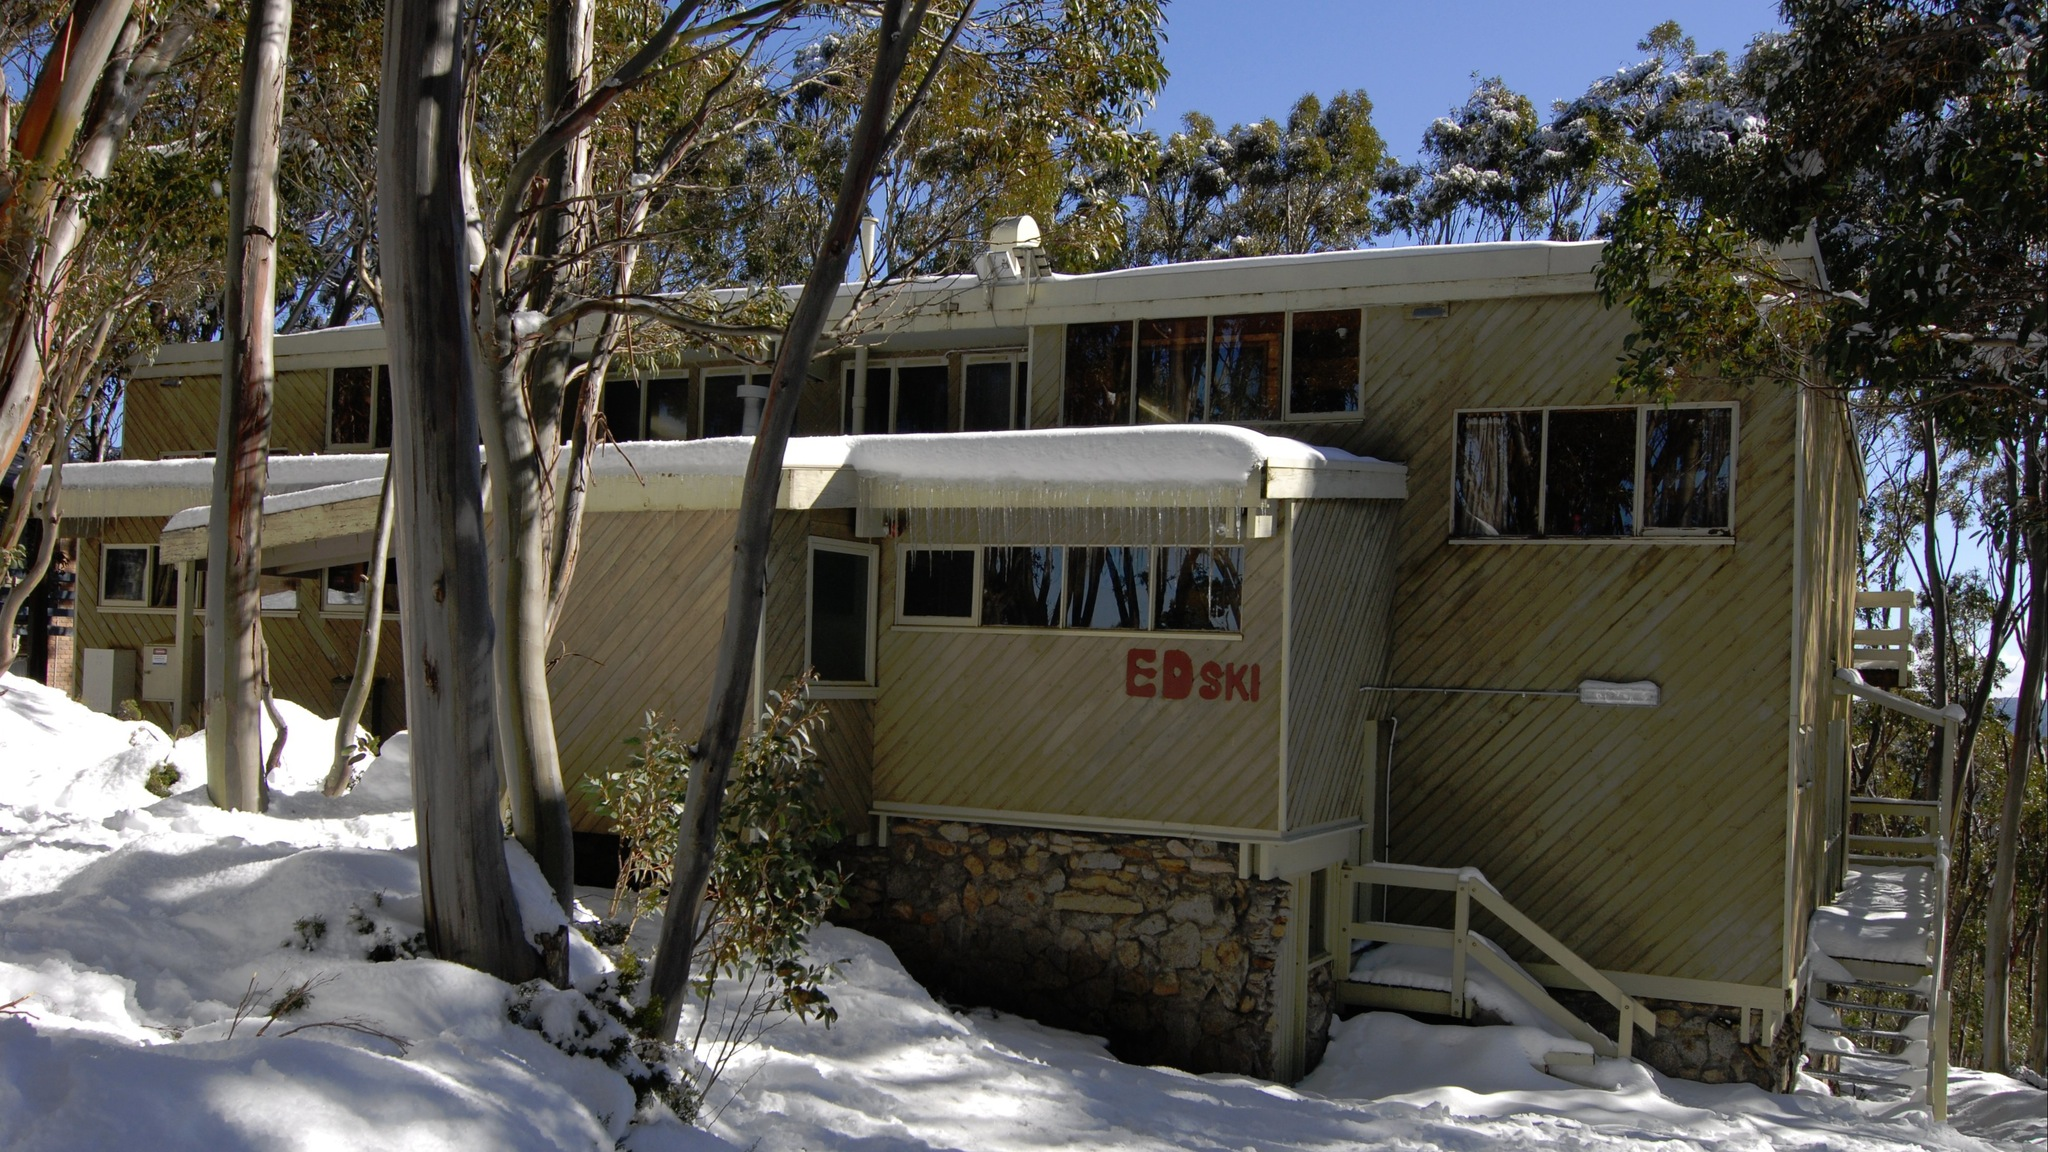 Outside view of Edski Lodge during Winter